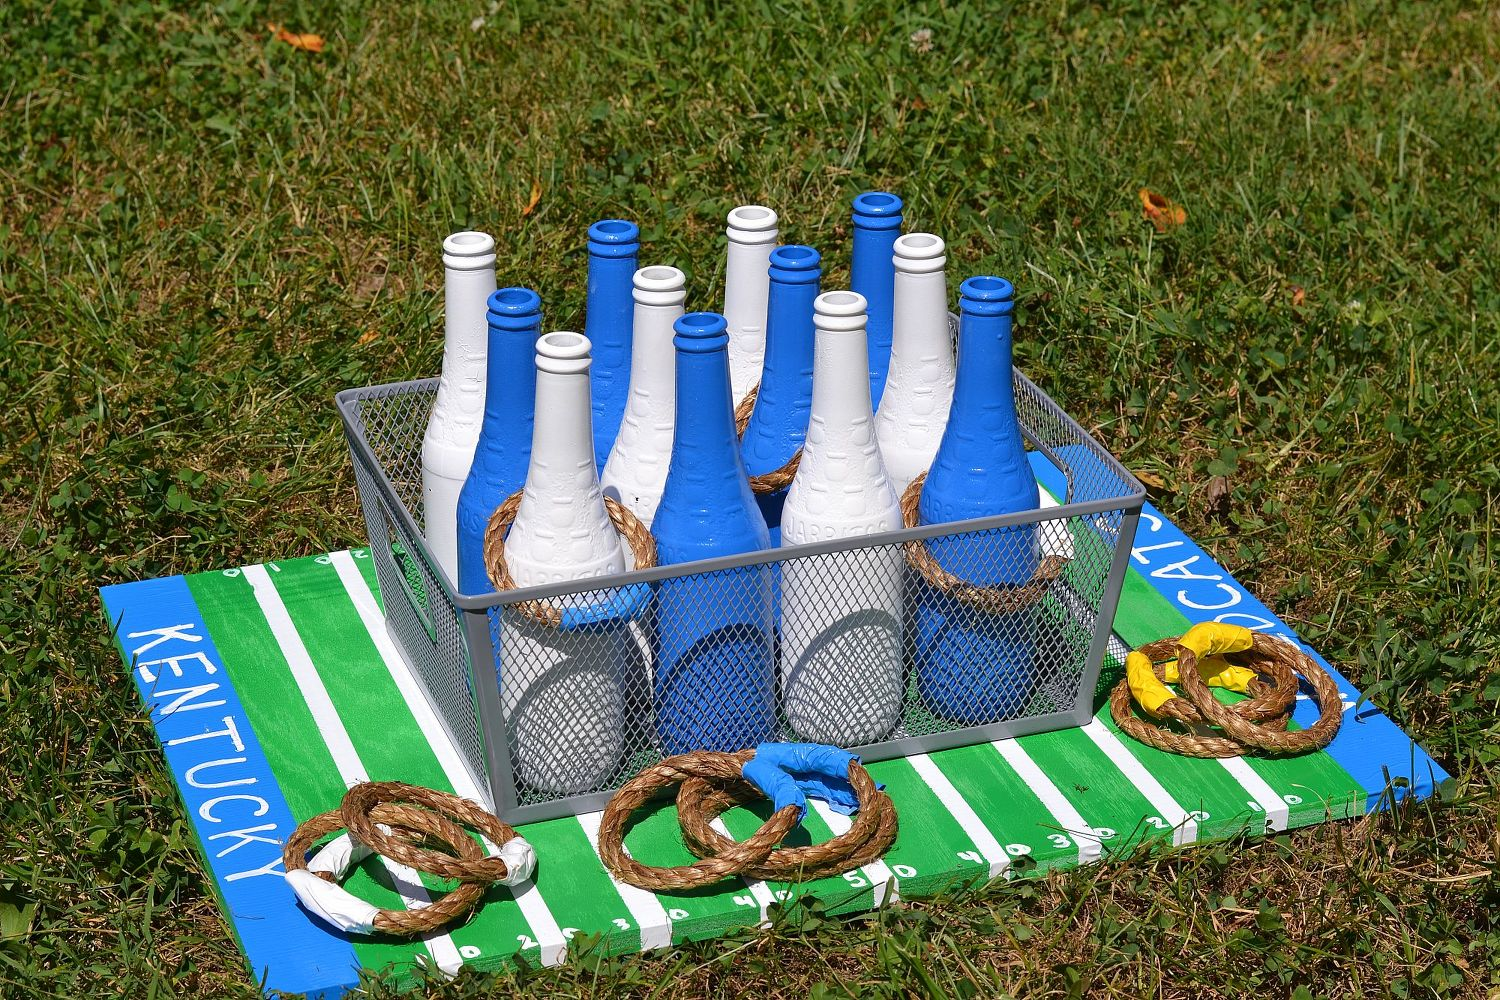 13 Crazy Fun Yard Games Your Family Will Flip For This